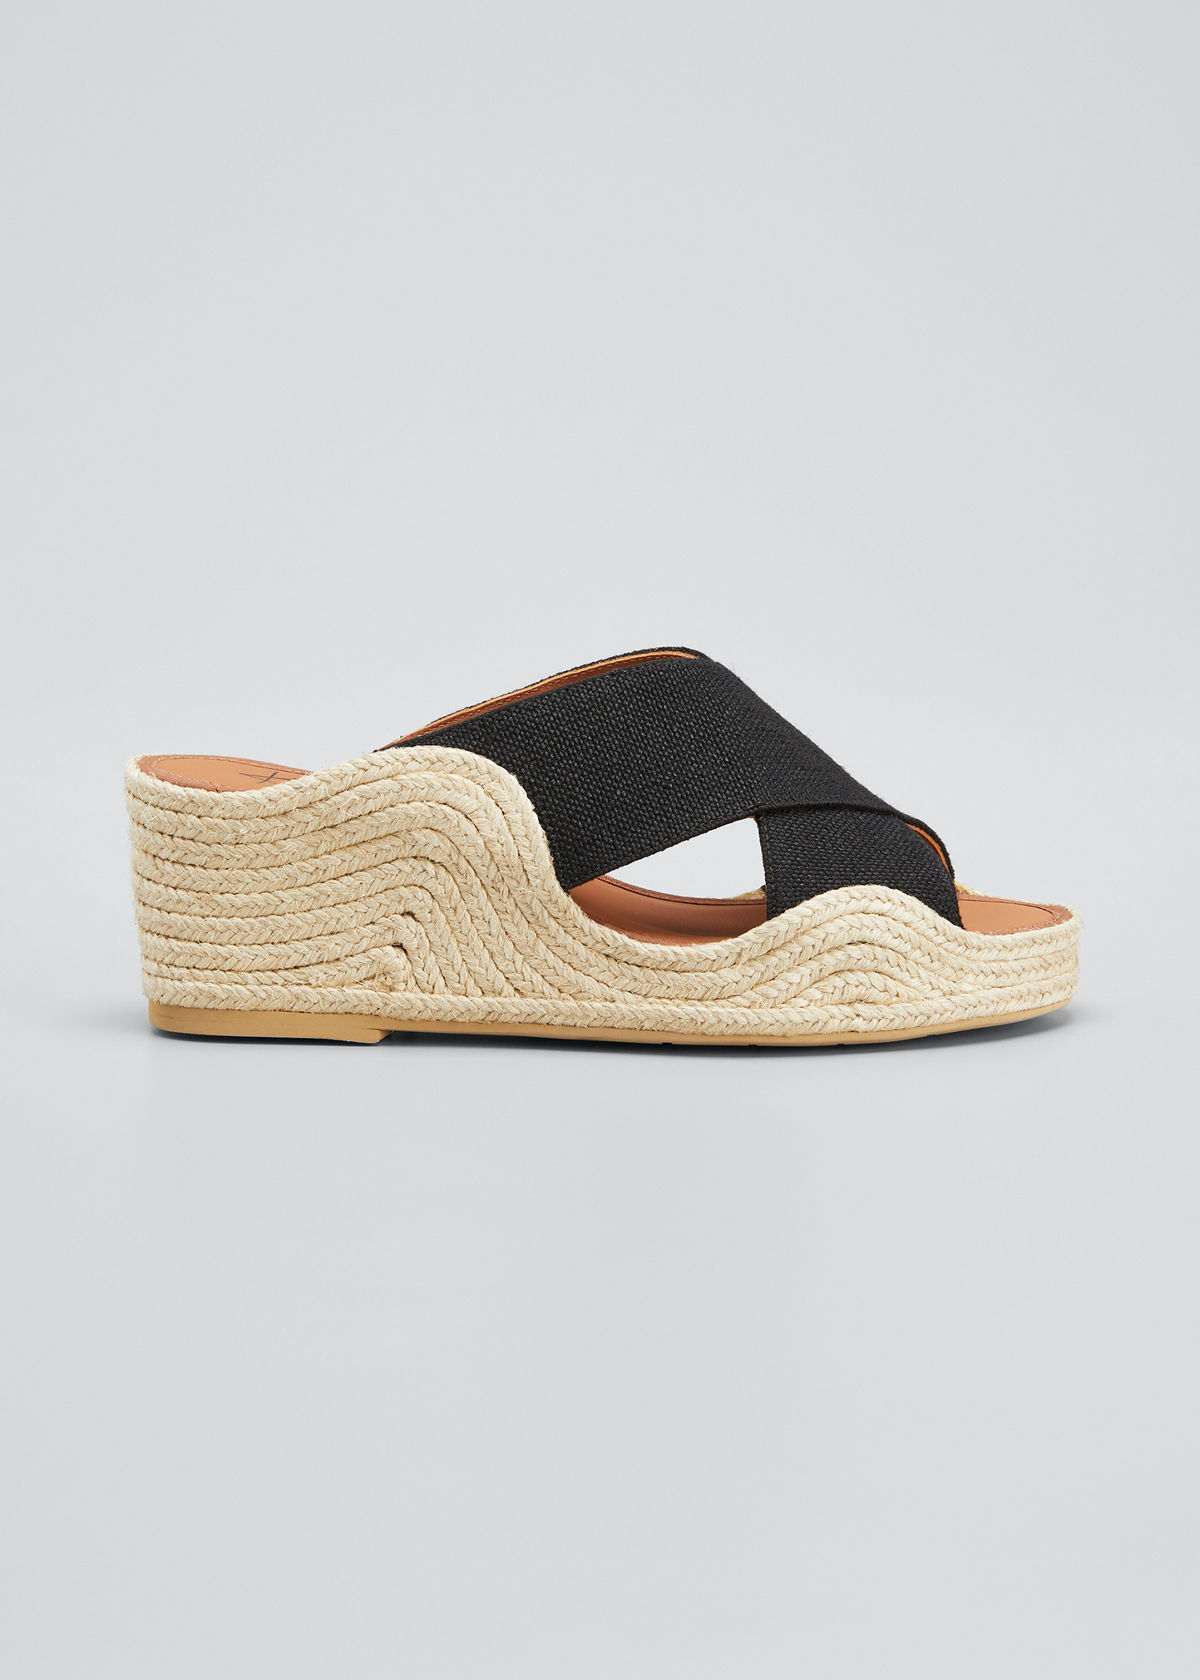 Aquatalia Sandals MARINA CRISSCROSS ESPADRILLE SANDALS